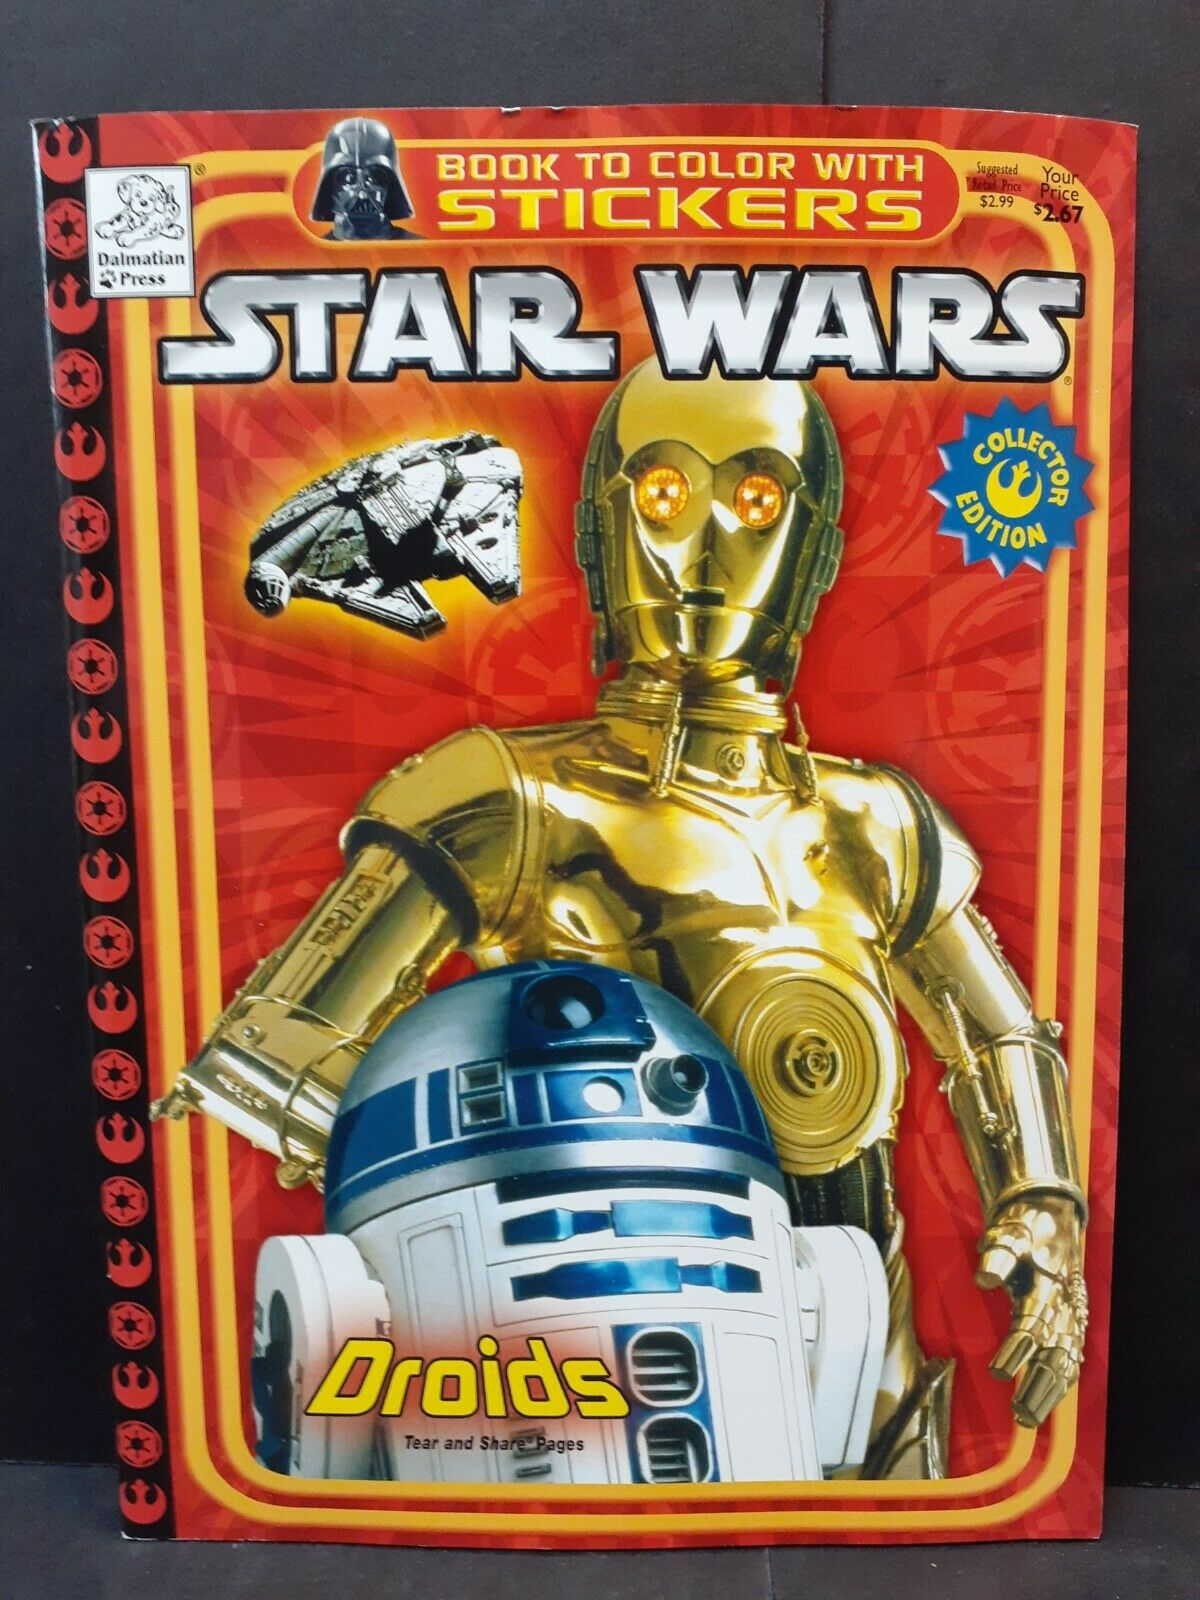 Star Wars Book to Color with Stickers (Droids)